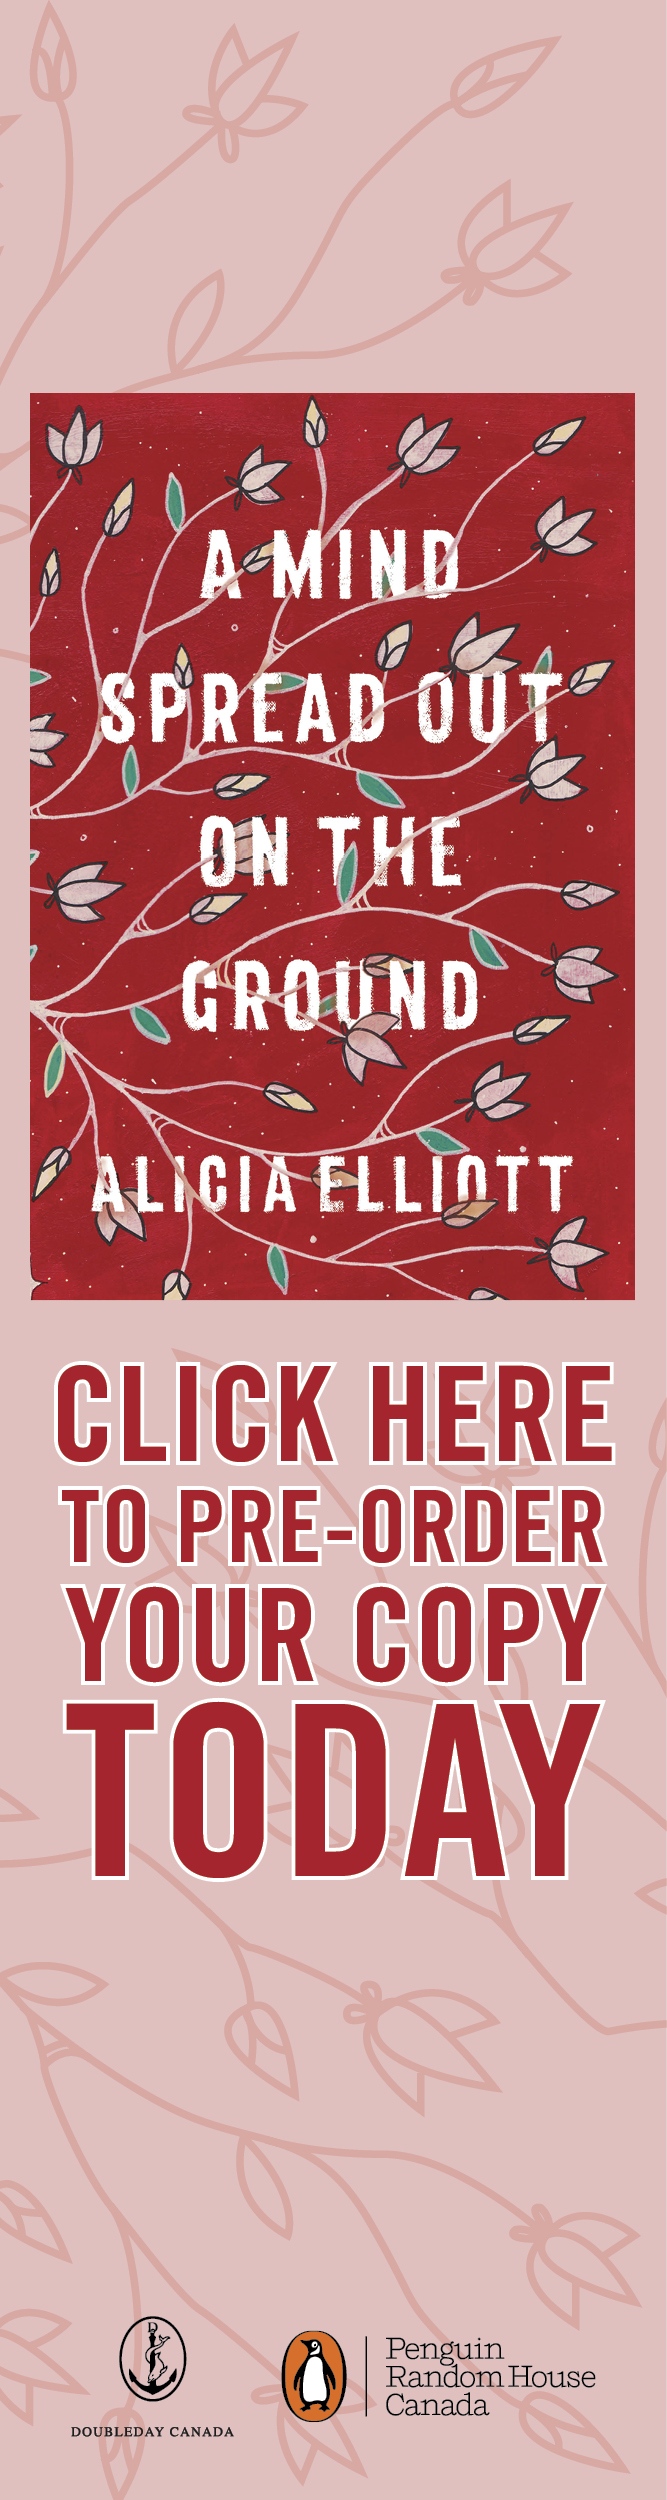 Penguin Randomhouse Alicia Elliott